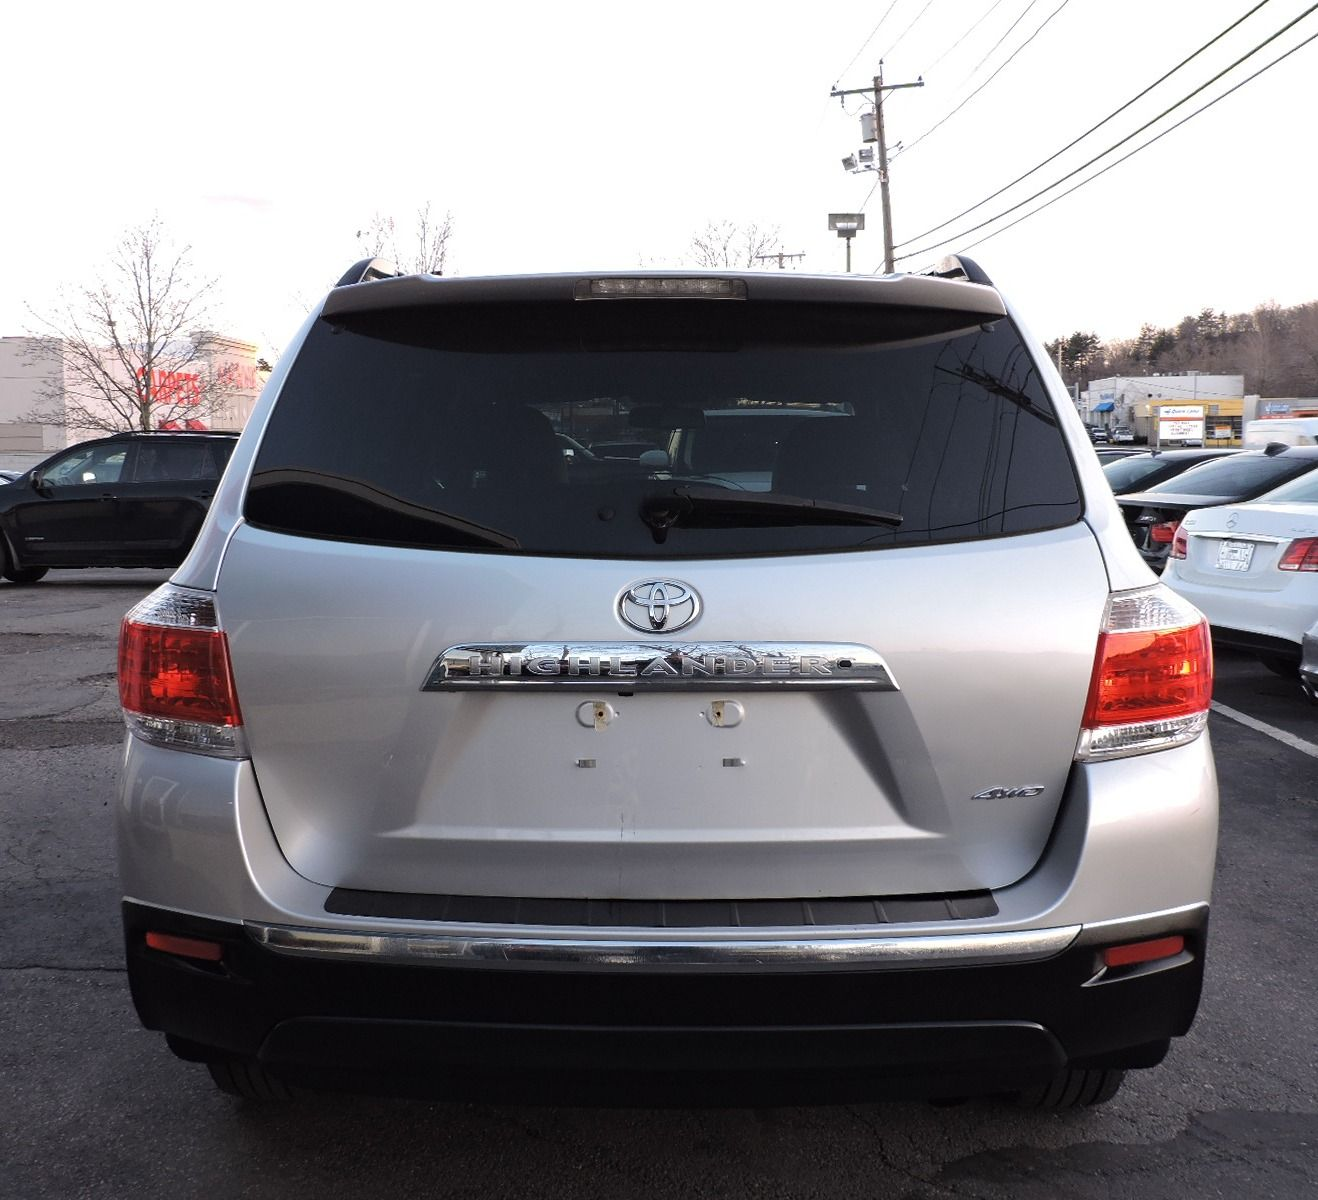 Pictures Of Toyota Highlander: Used 2013 Toyota Highlander SE At Auto House USA Saugus